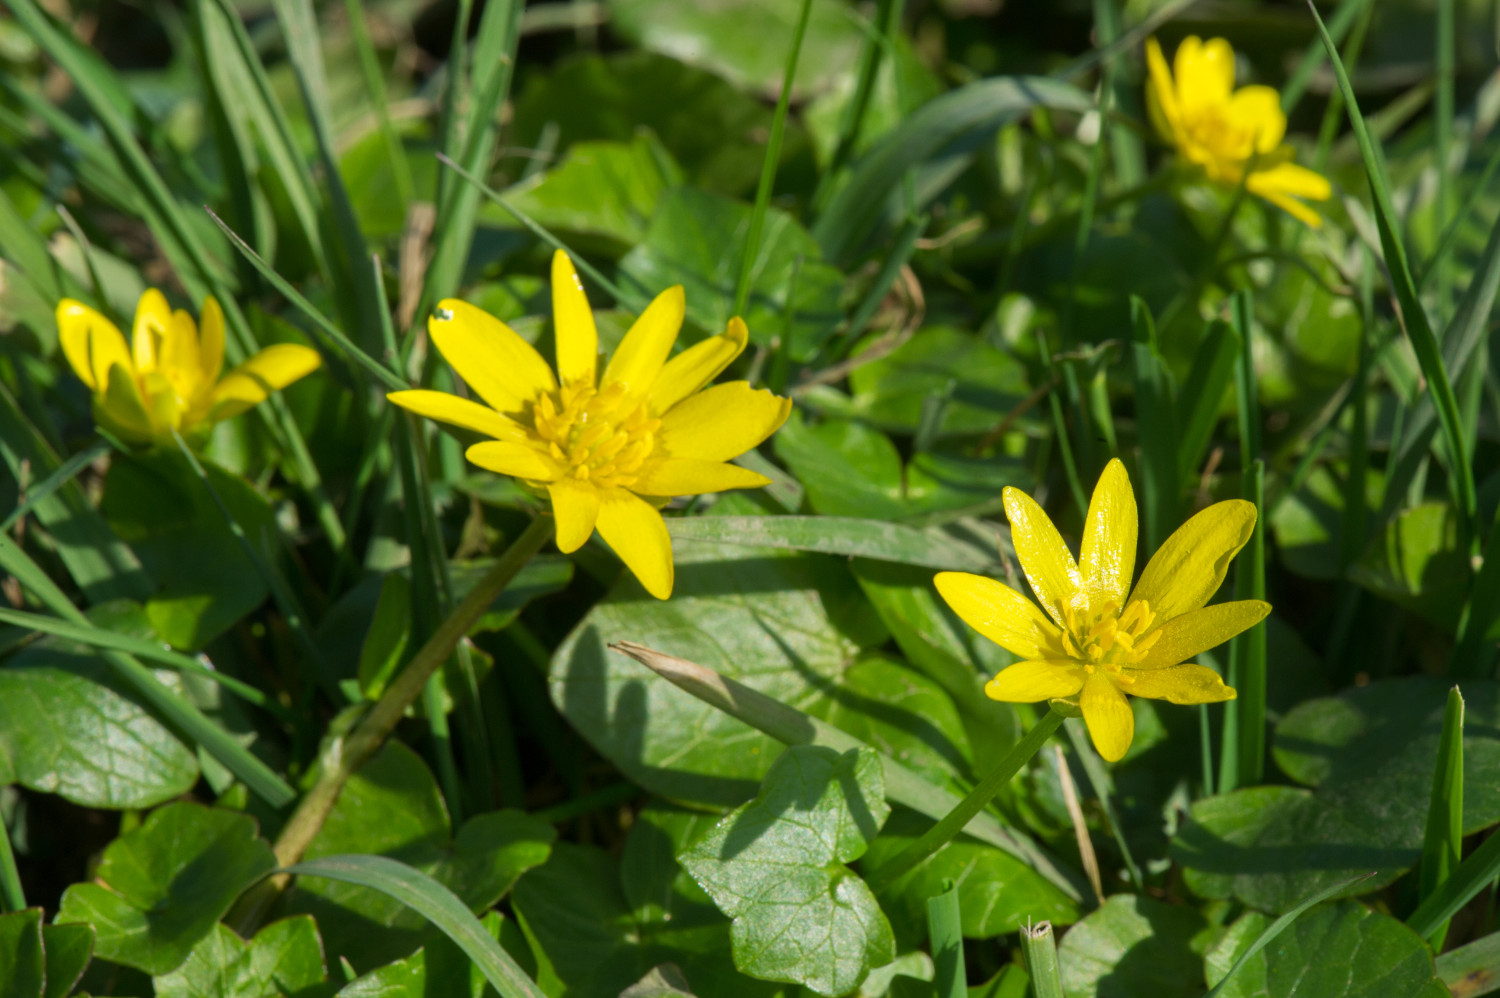 Weeds greenthumb lawn treatment service lesser celandine dhlflorist Image collections